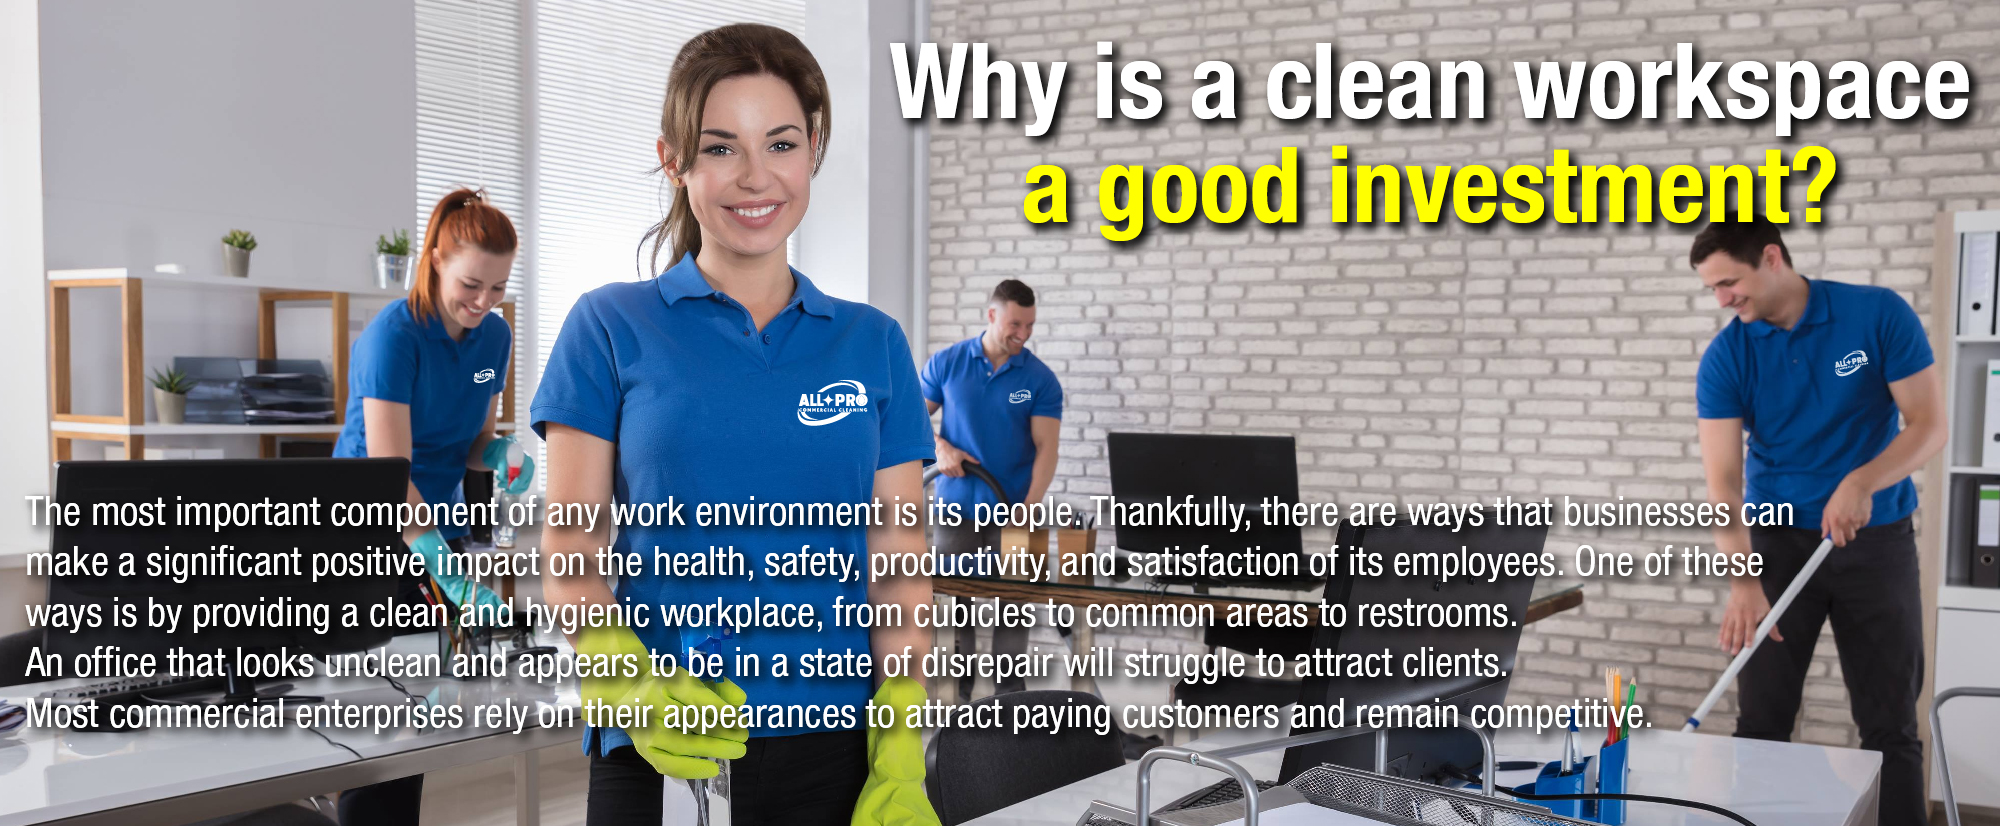 Why is a clean workspace a good investment?